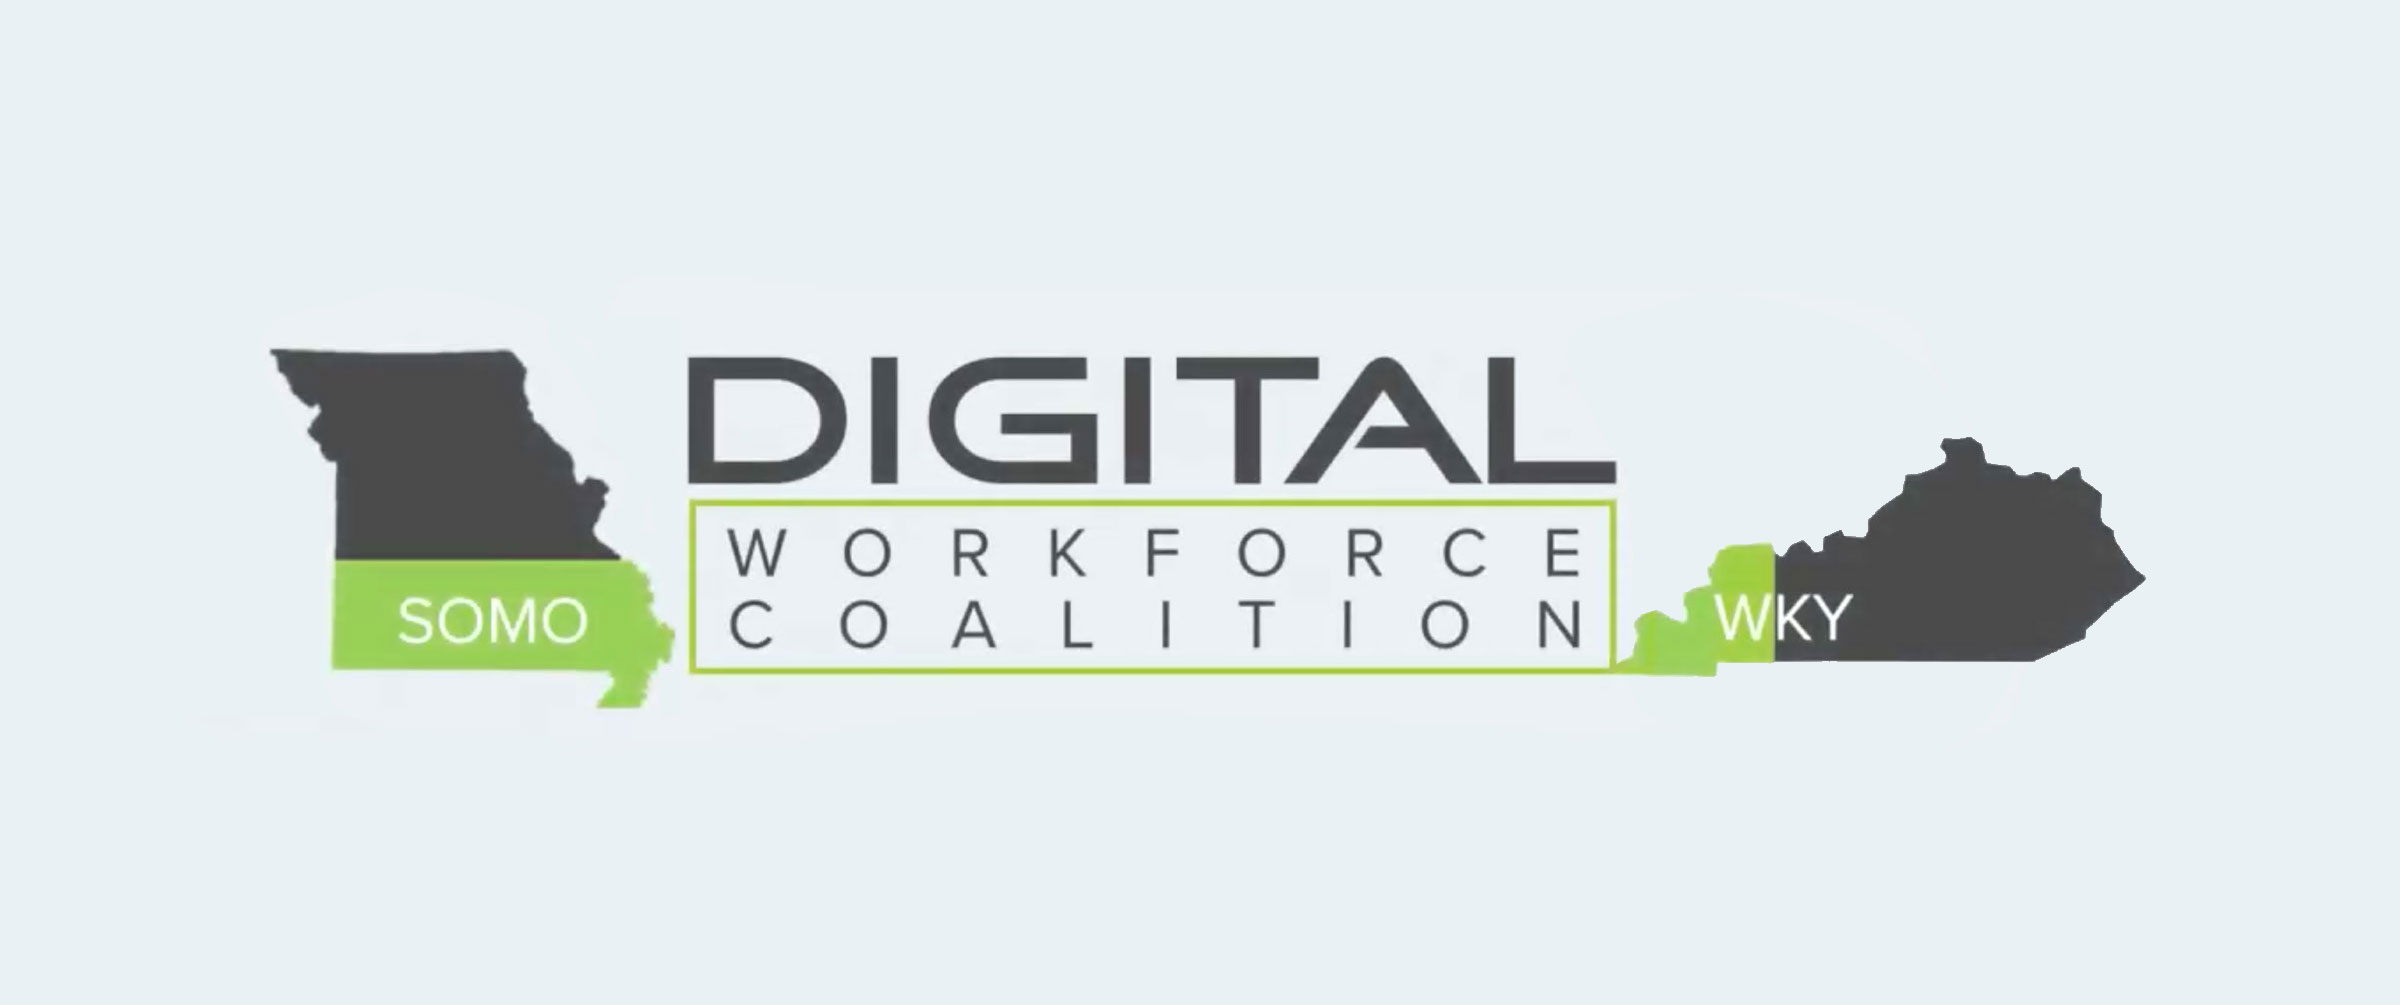 Digital Workforce Coalitions of Southern Missouri and West Kentucky